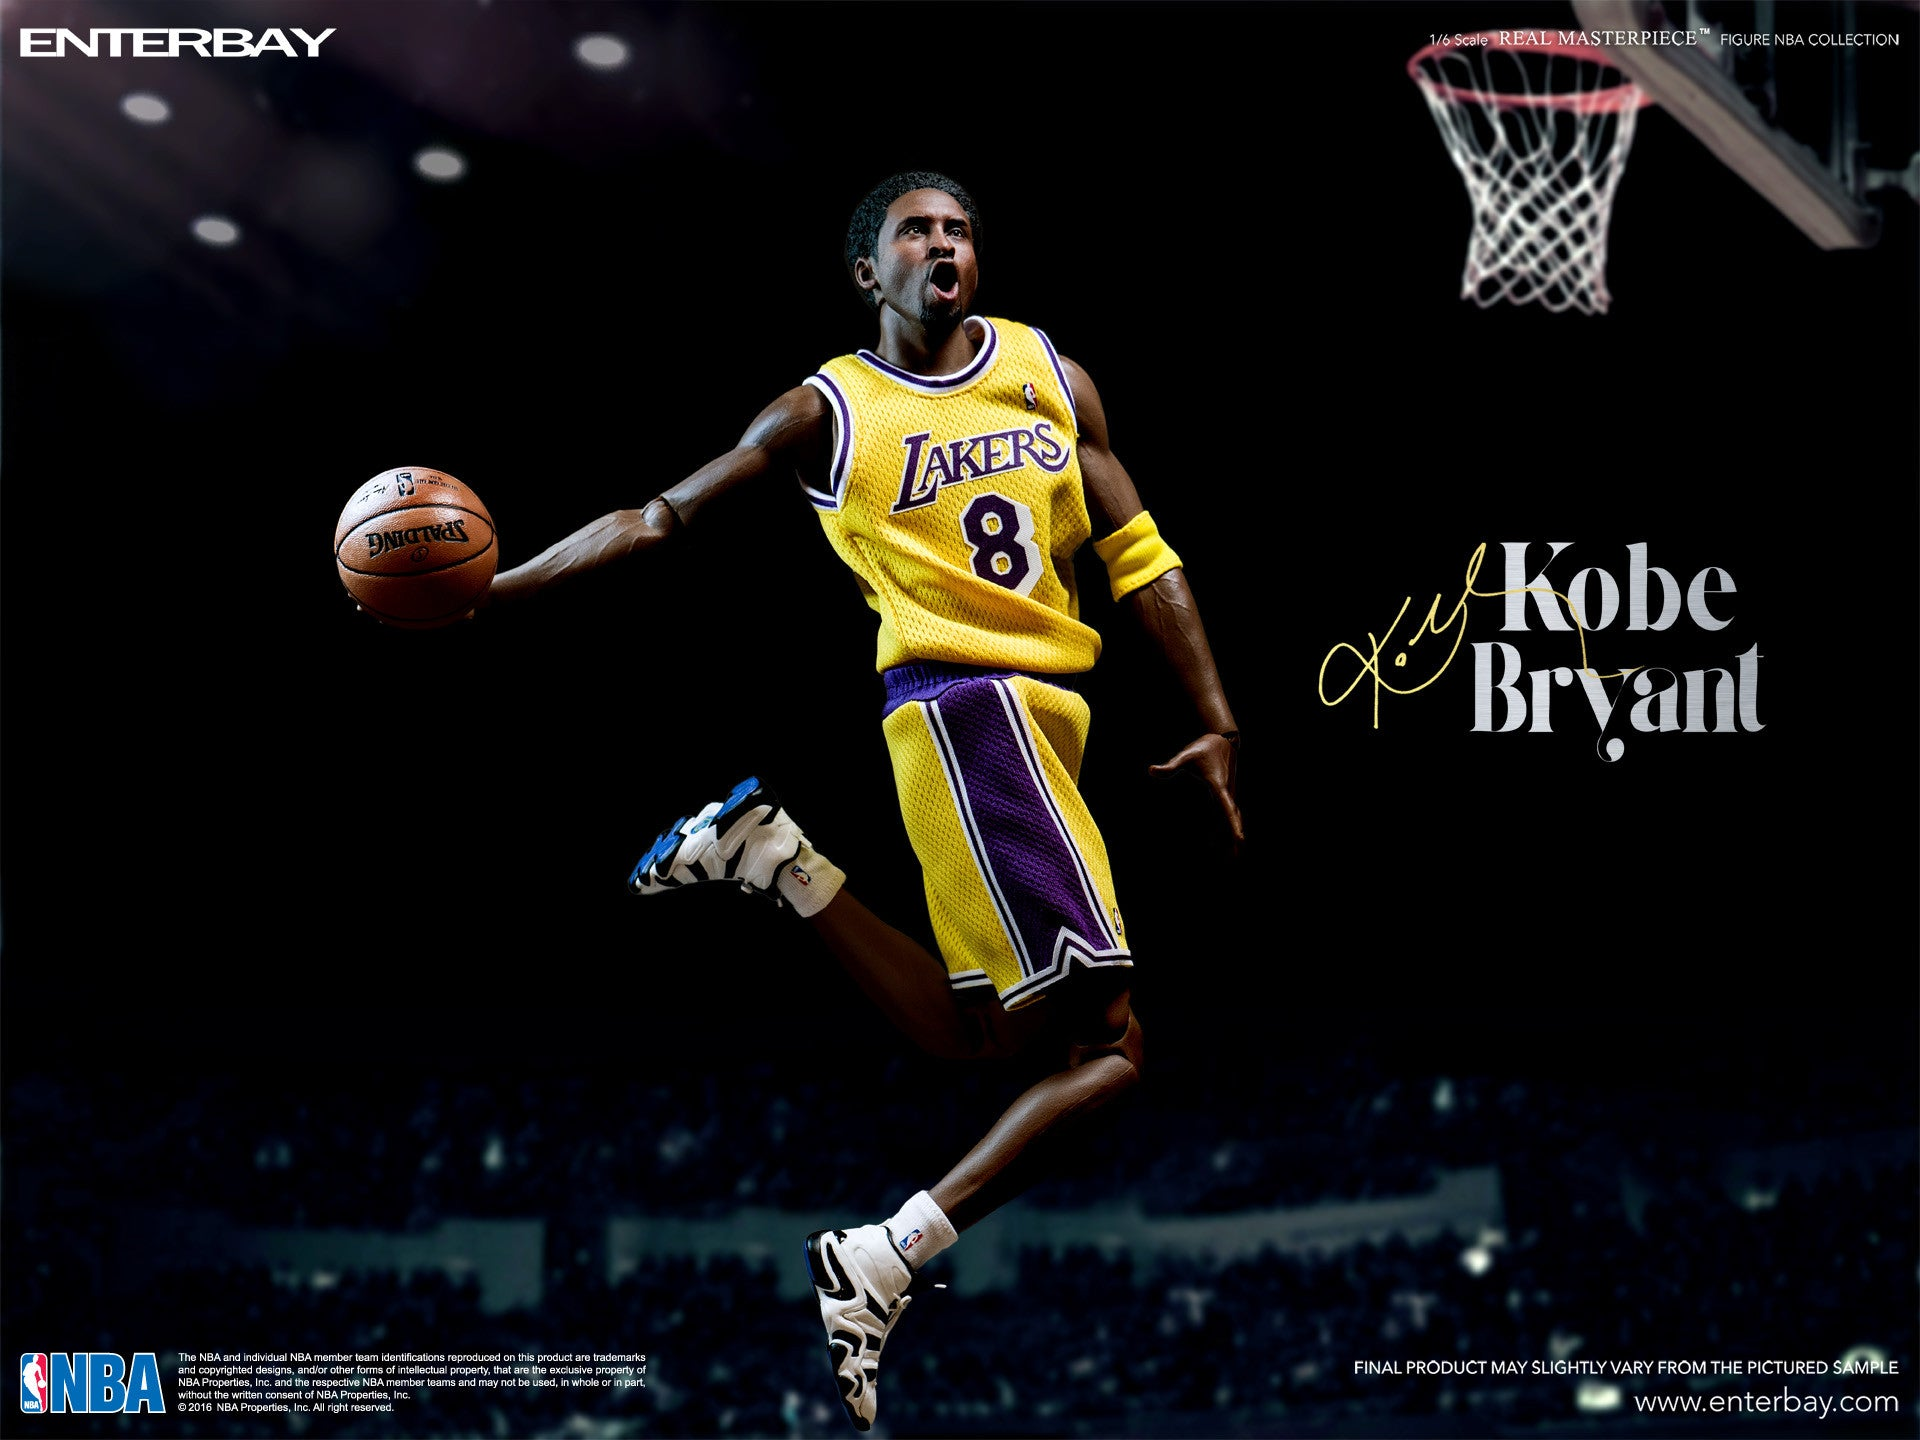 (IN STOCK) Enterbay - NBA Collection - Kobe Bryant - Marvelous Toys - 2